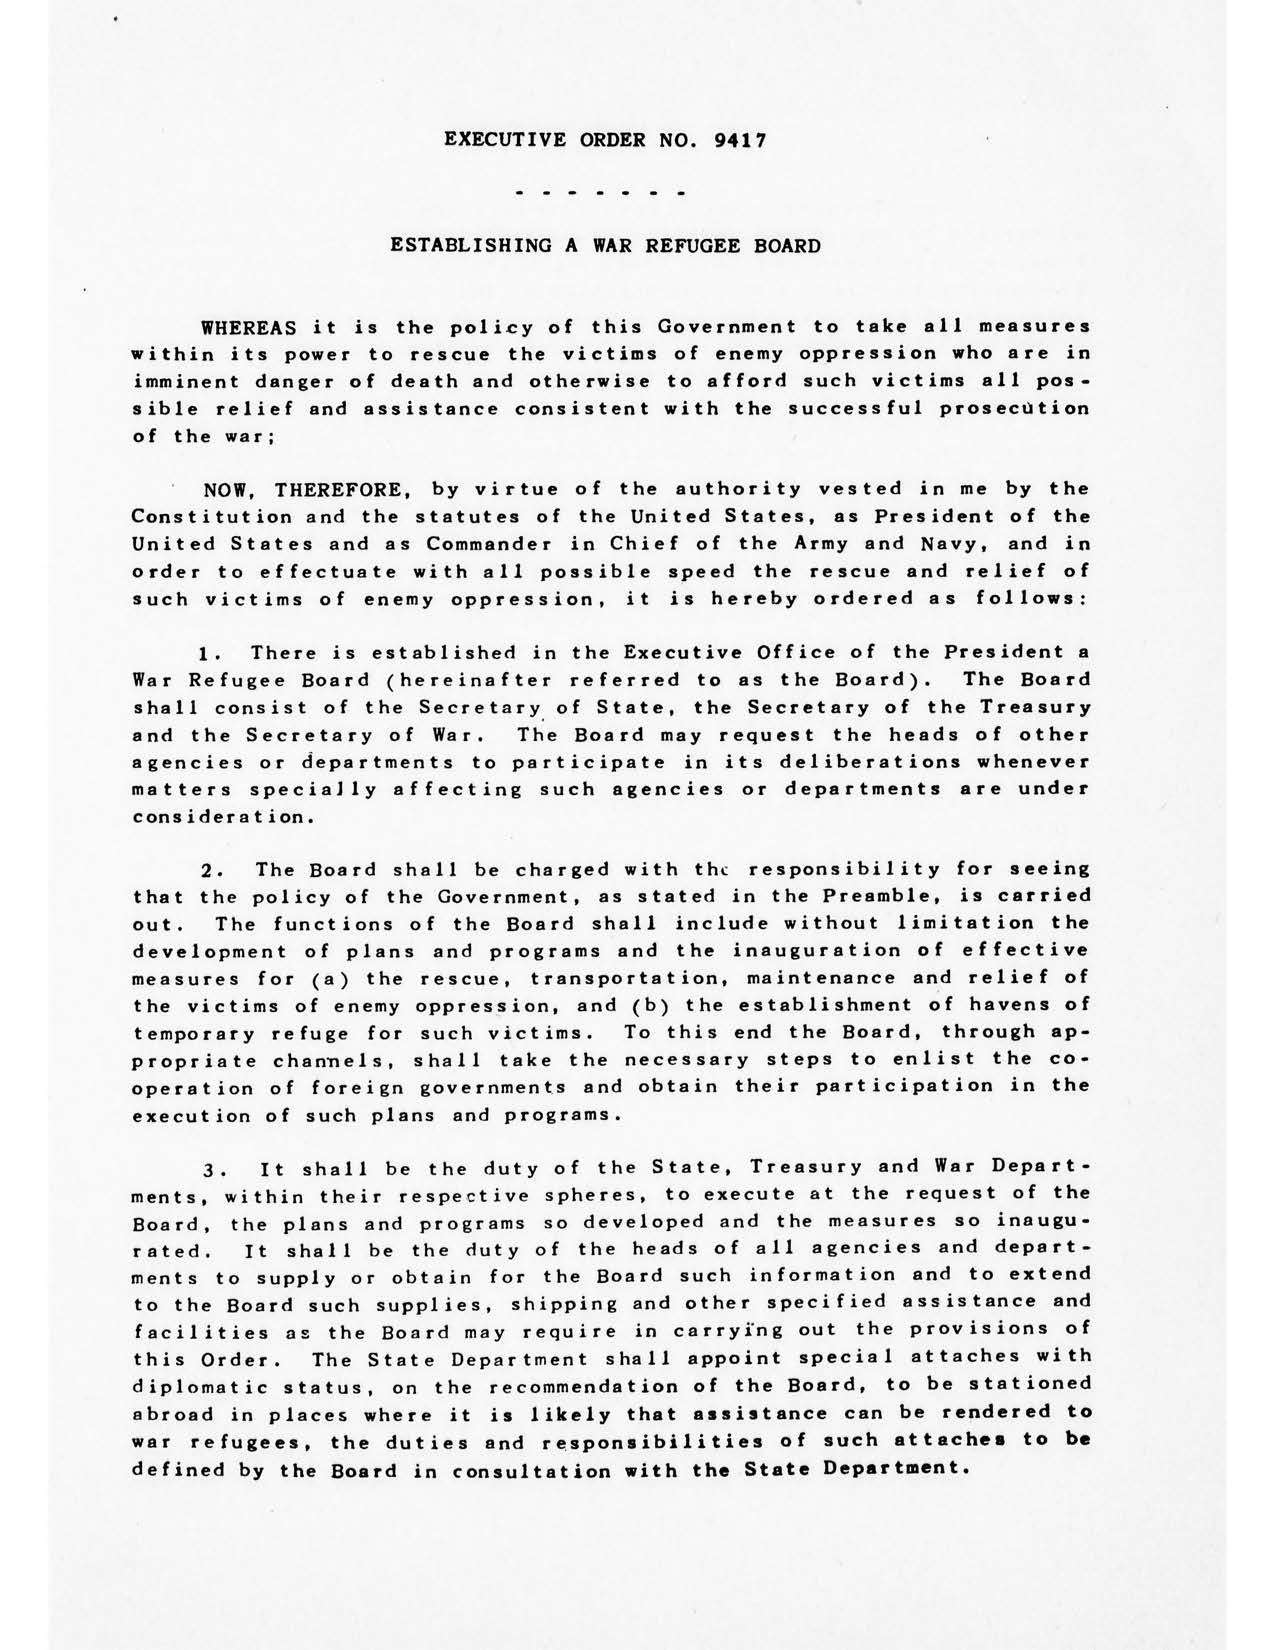 Executive Order No 9417 Establishing a War Refugee Board